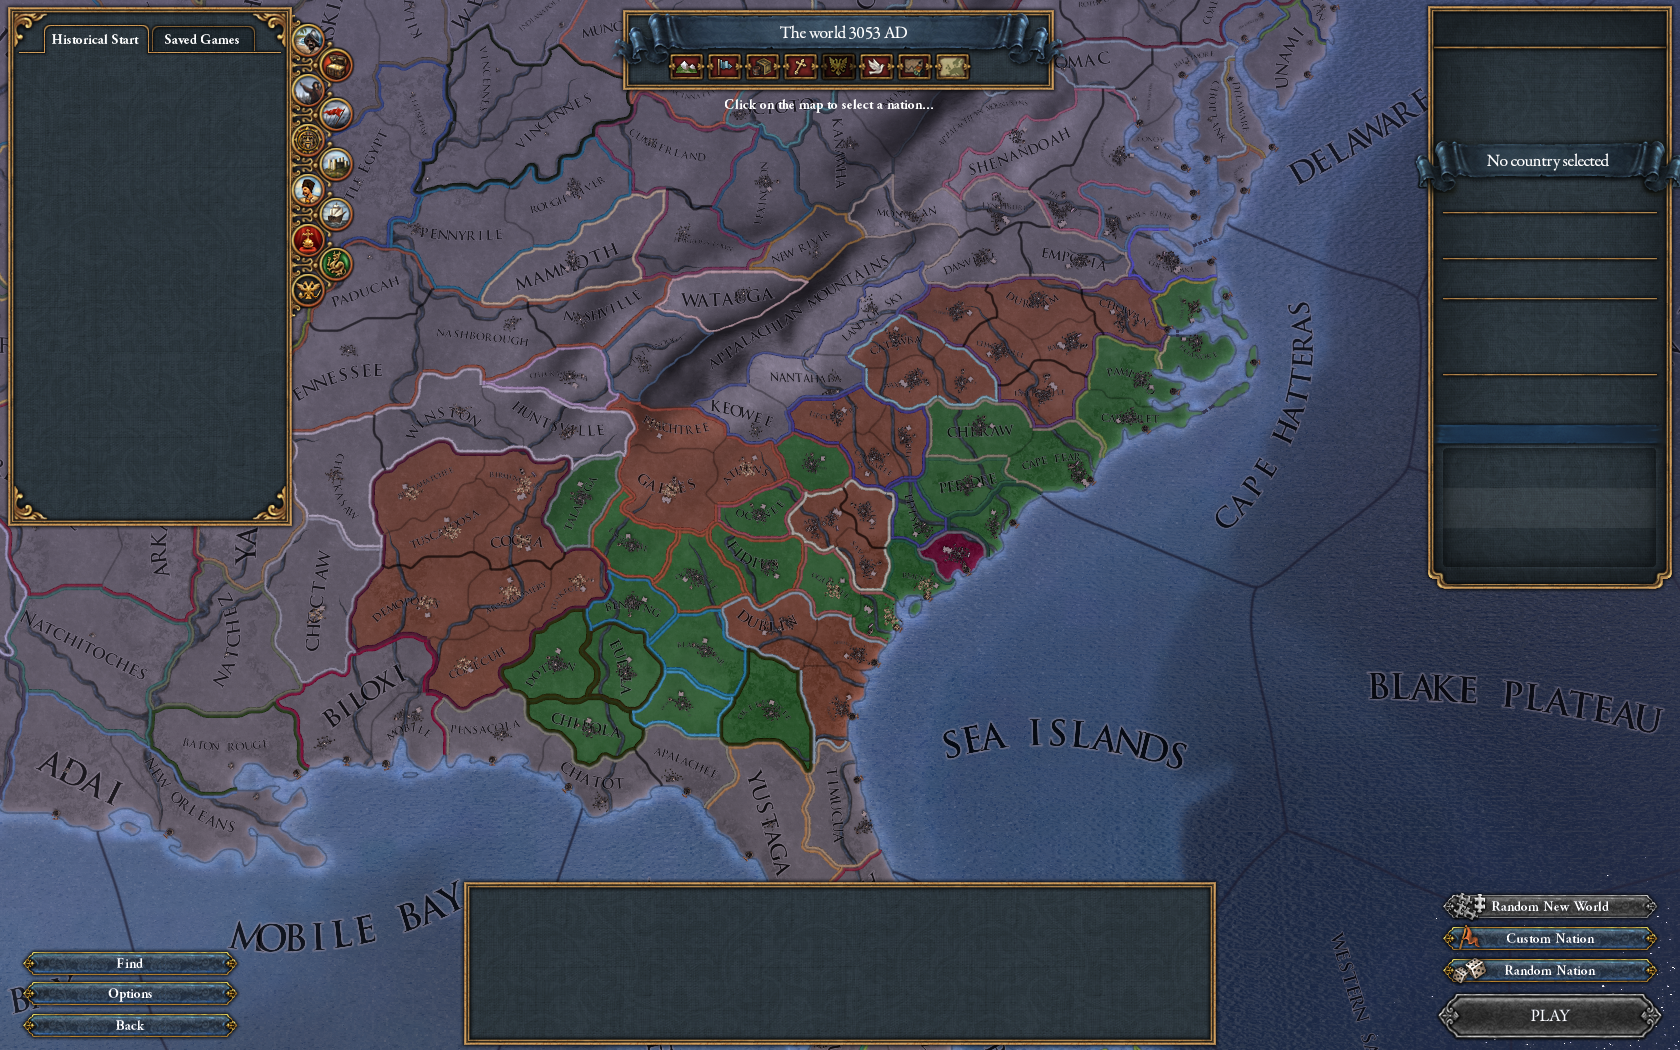 Presenting Long After the End, a CK2->EU4 converter mod for